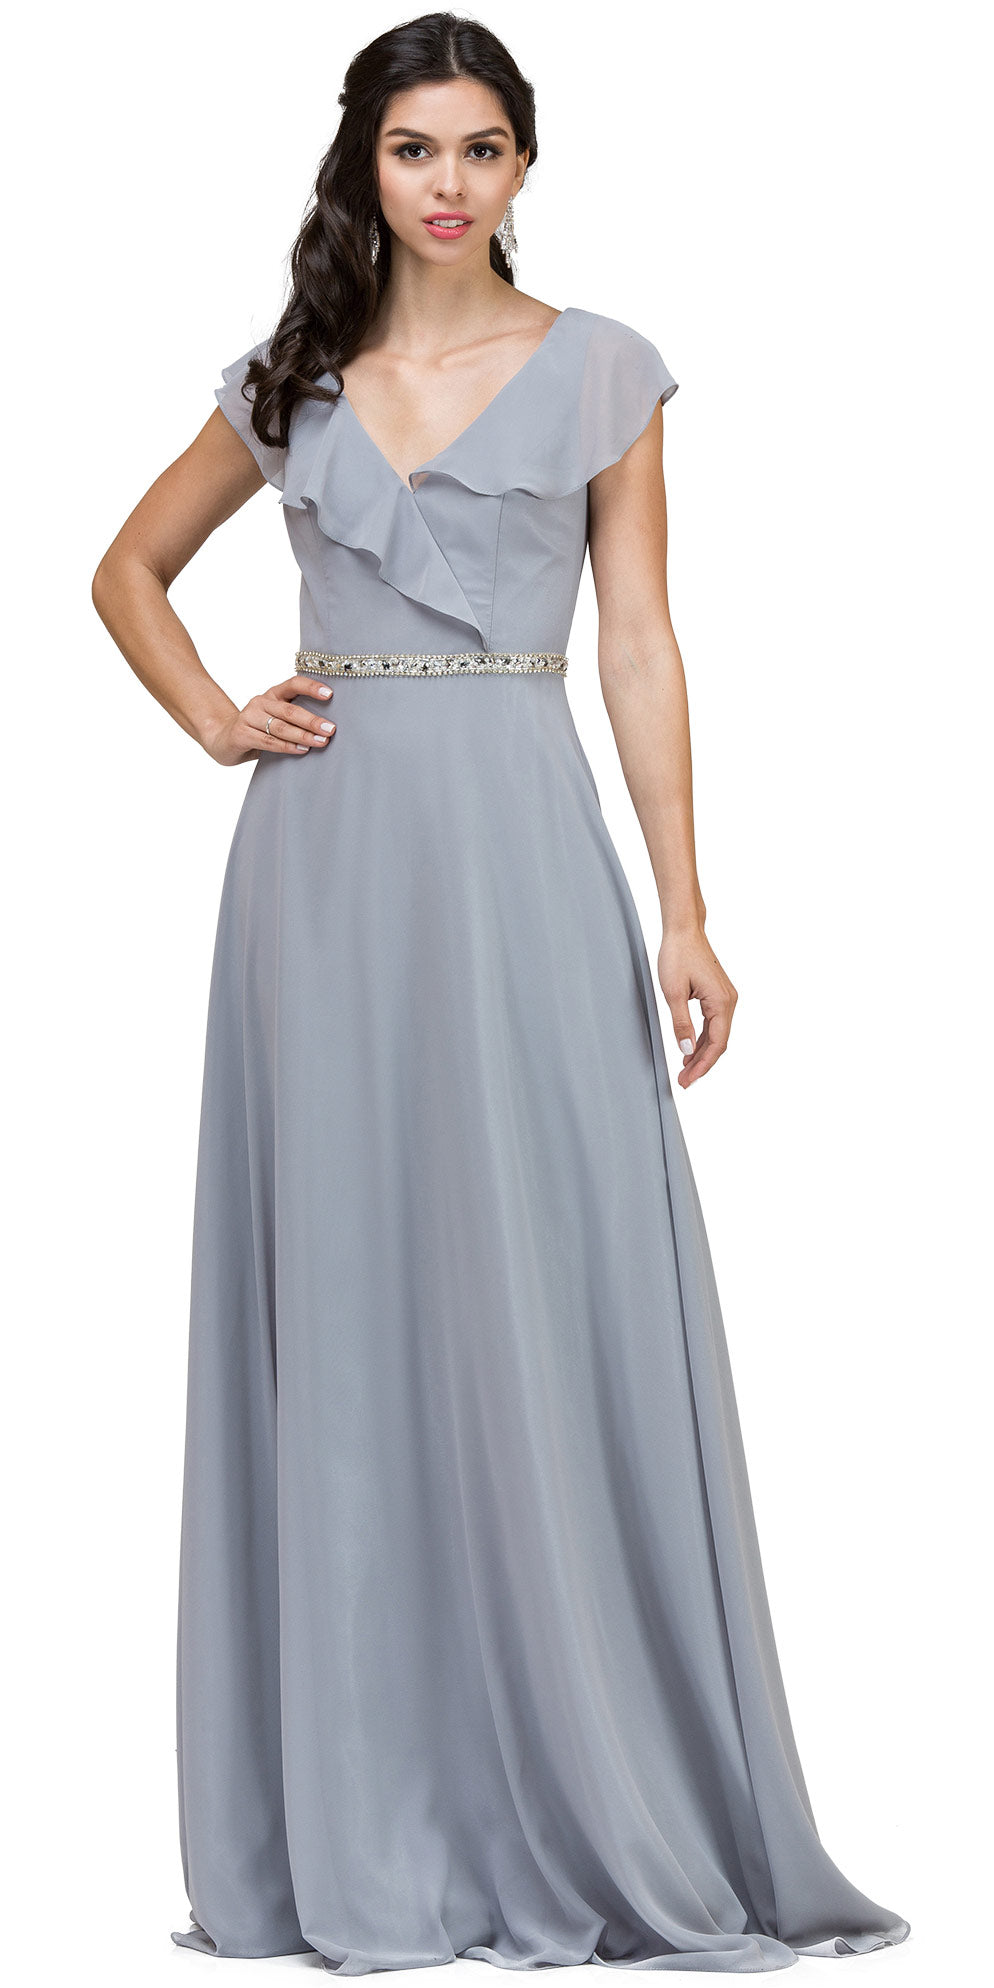 Image of V-neck Ruffled Top Beaded Waist Long Chiffon Formal Dress in Silver